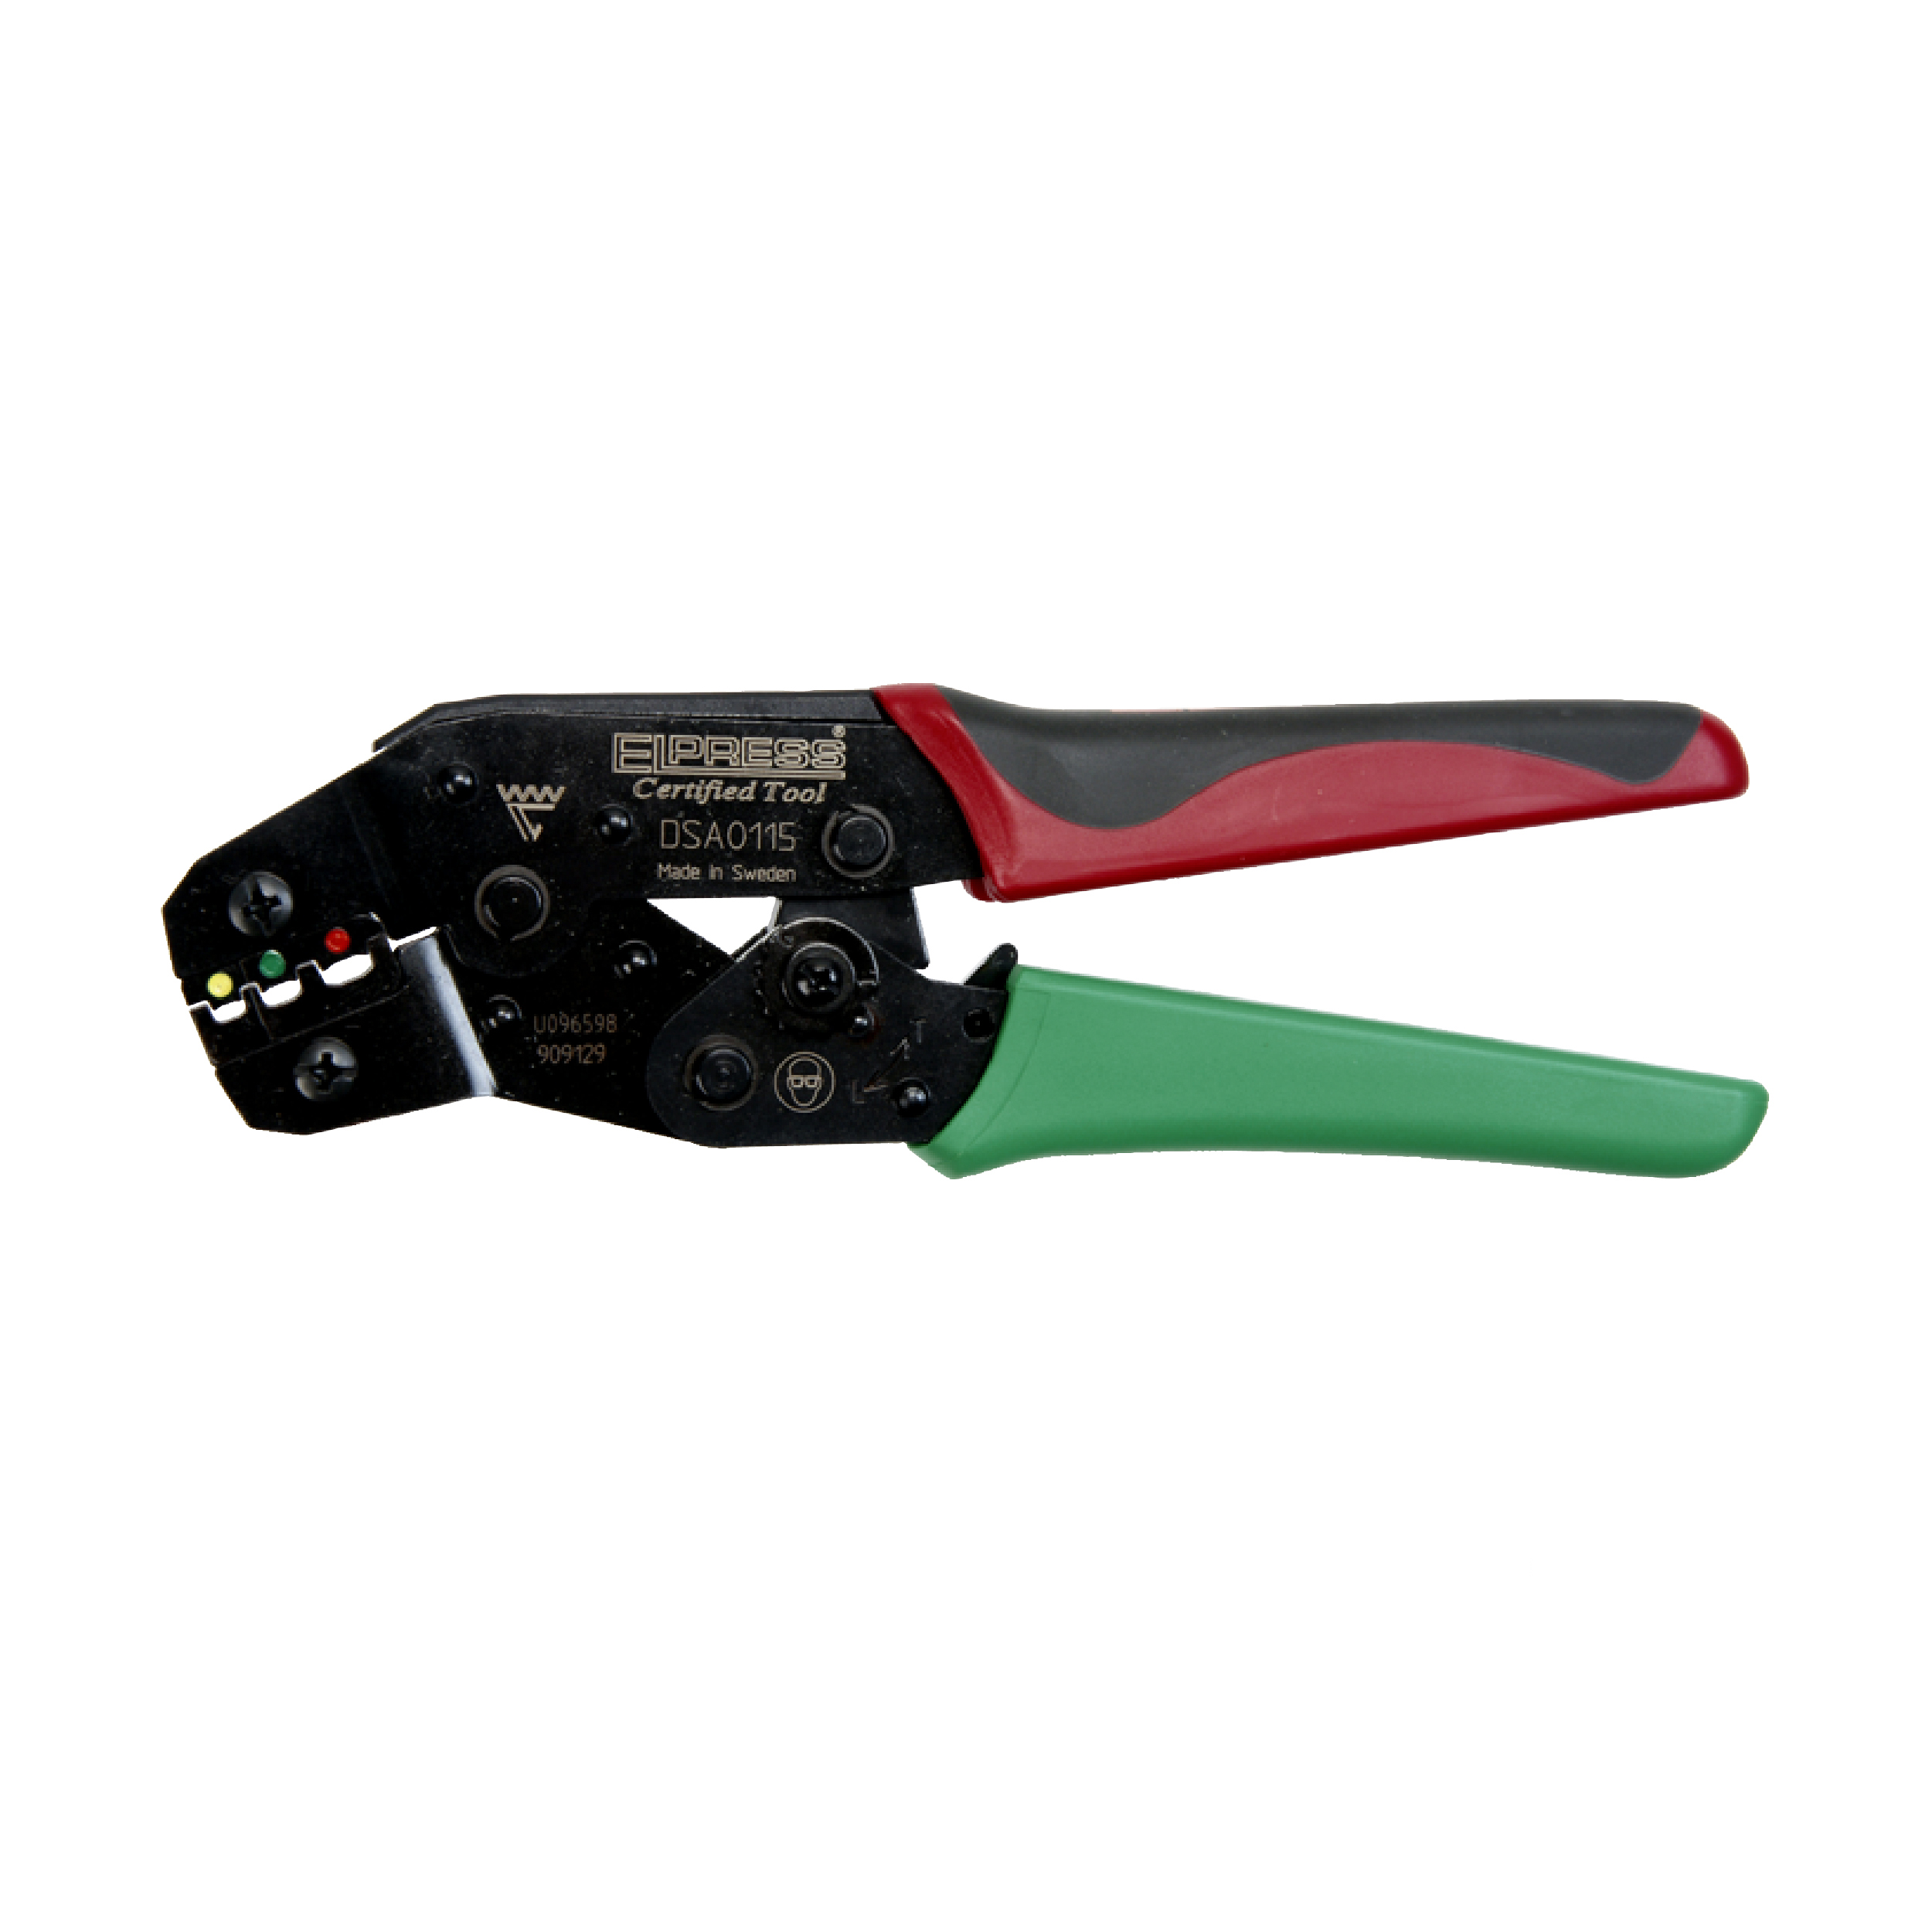 Elpress DSA0115 Crimping Tool (0.14-1.5mm²)